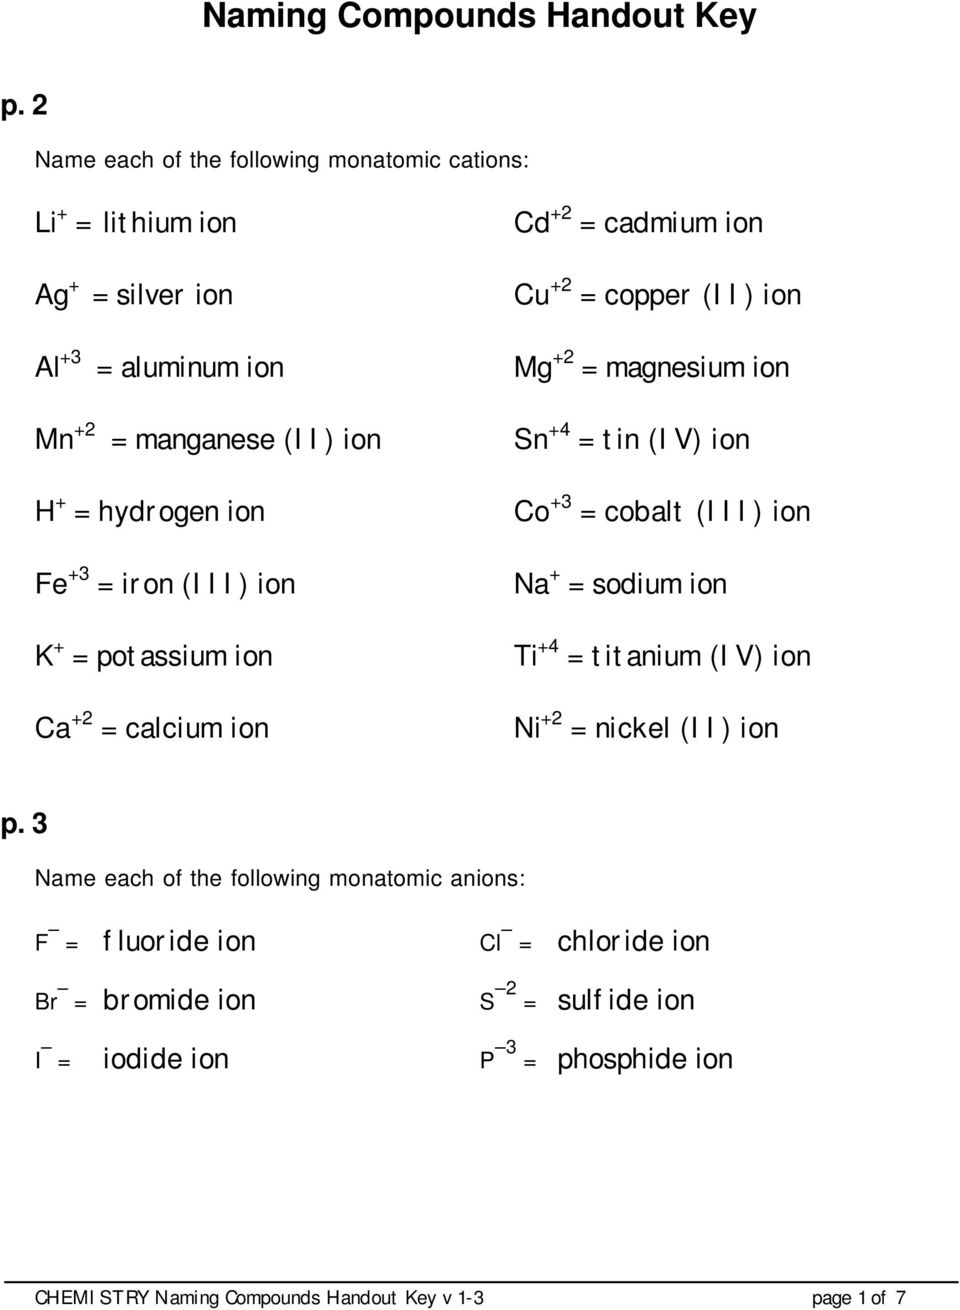 magnesium ion Mn +2 = manganese (II) ion Sn +4 = tin (IV) ion H + = hydrogen ion Fe +3 = iron (III) ion K + = potassium ion Ca +2 = calcium ion Co +3 = cobalt